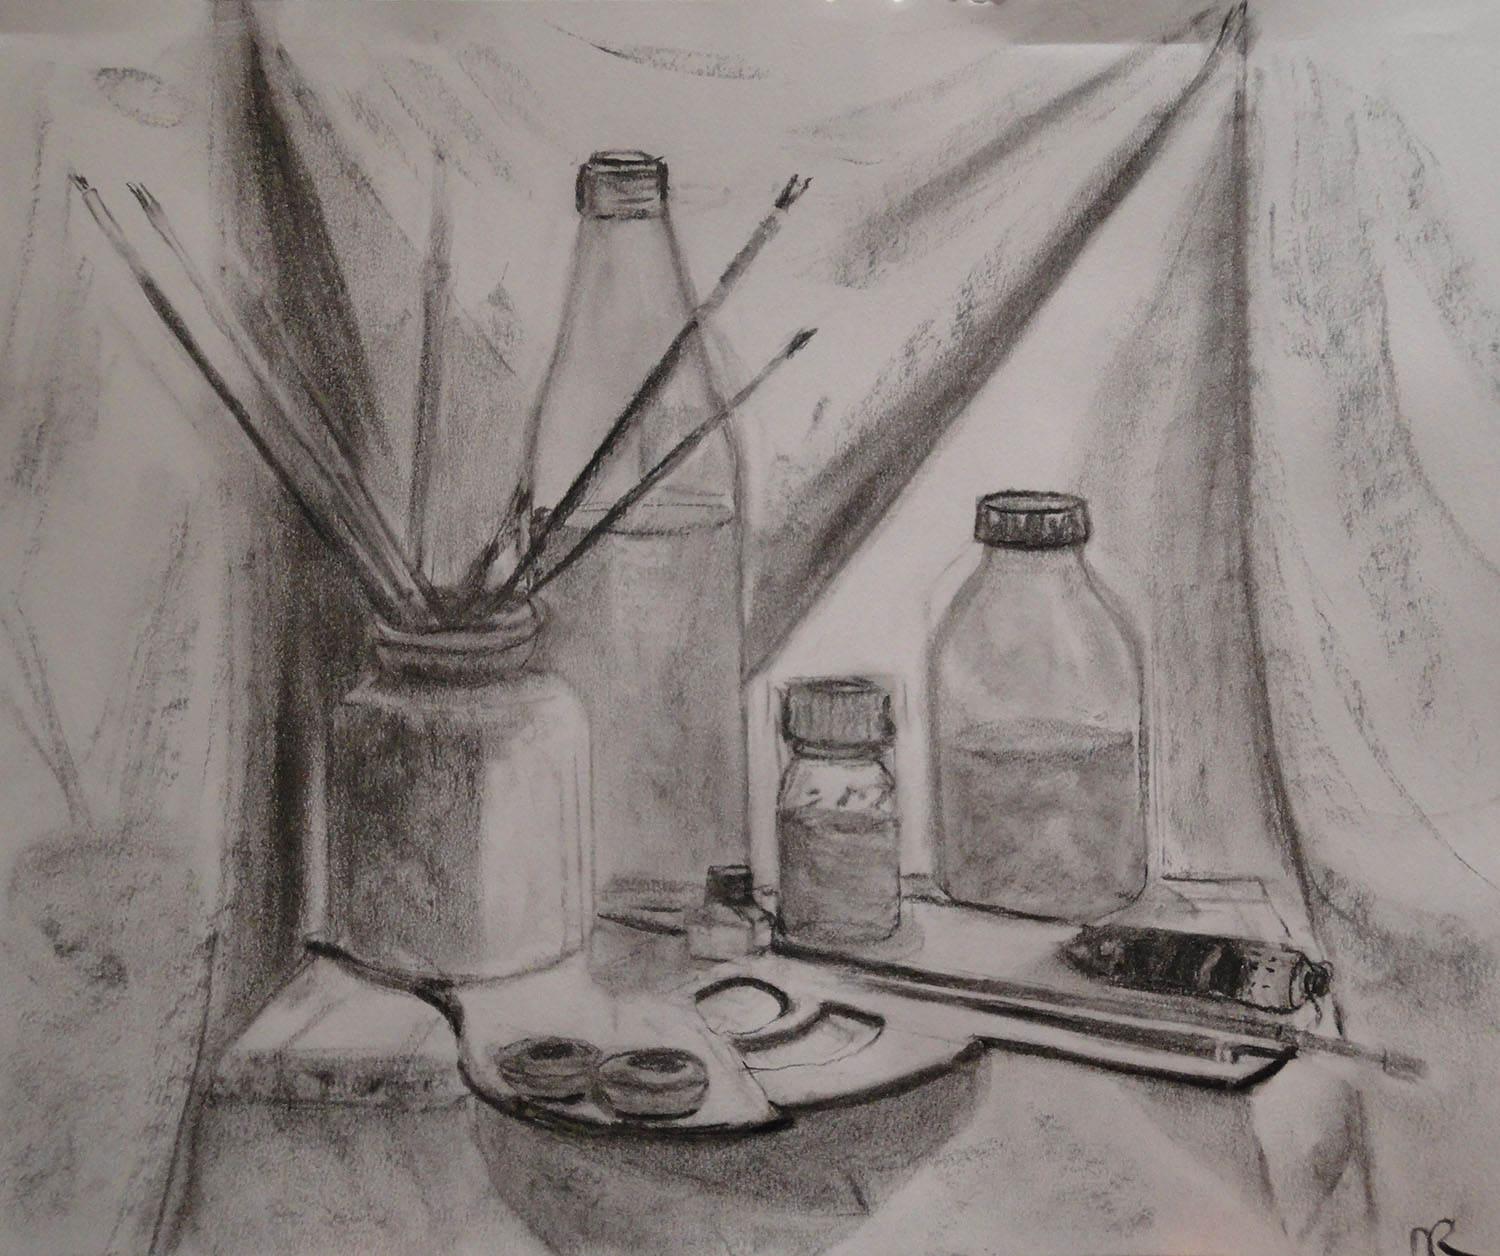 Atelier des fontaines cours natures mortes la technique mixte la mani re flamande 1 - Dessin de nature morte ...